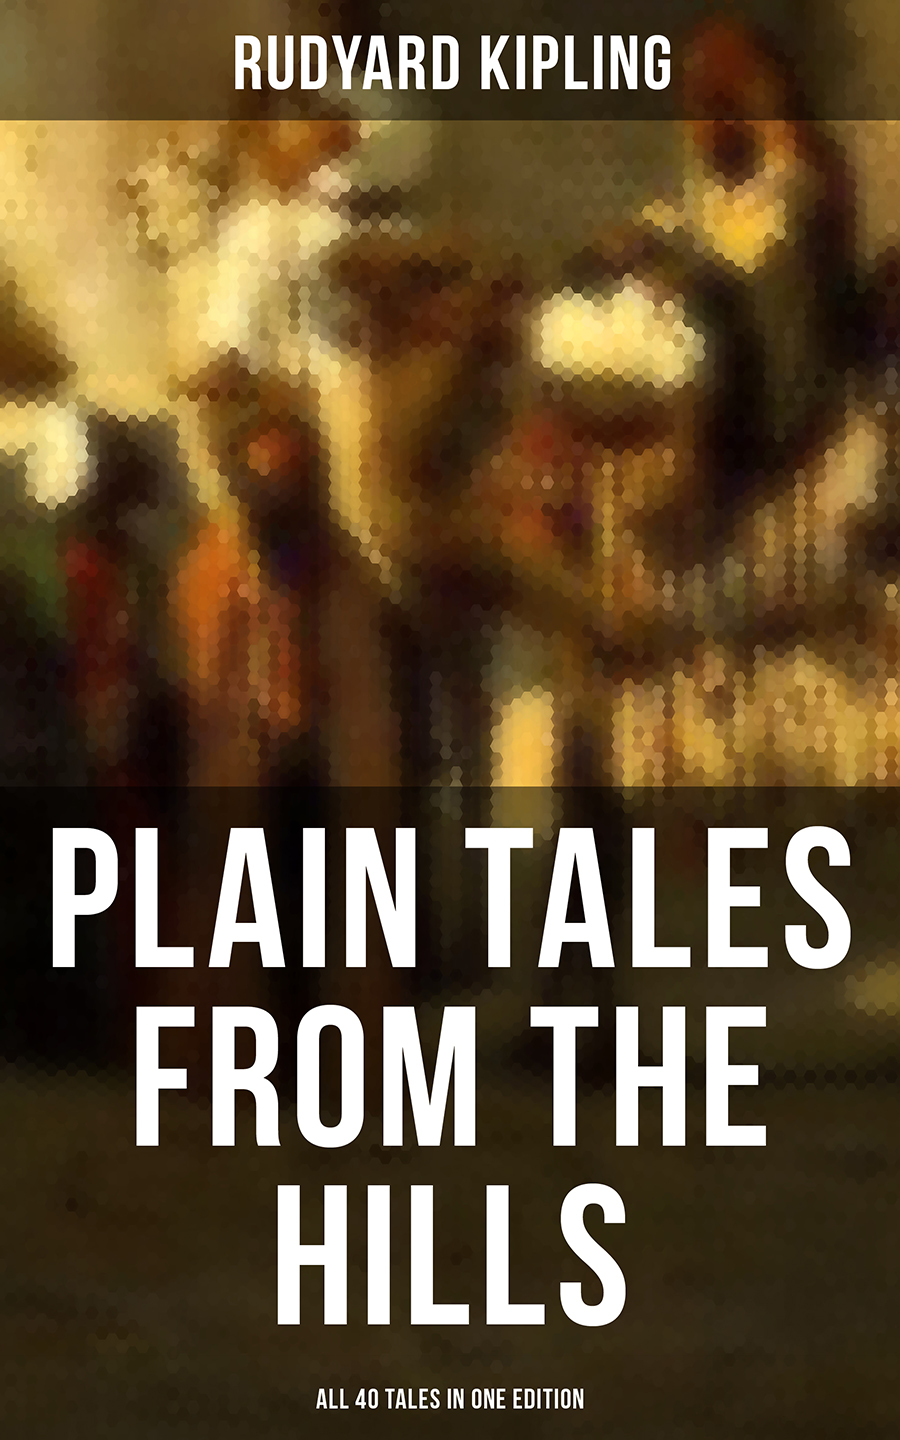 Rudyard 1865-1936 Kipling PLAIN TALES FROM THE HILLS - All 40 Tales in One Edition tales from moominvalley